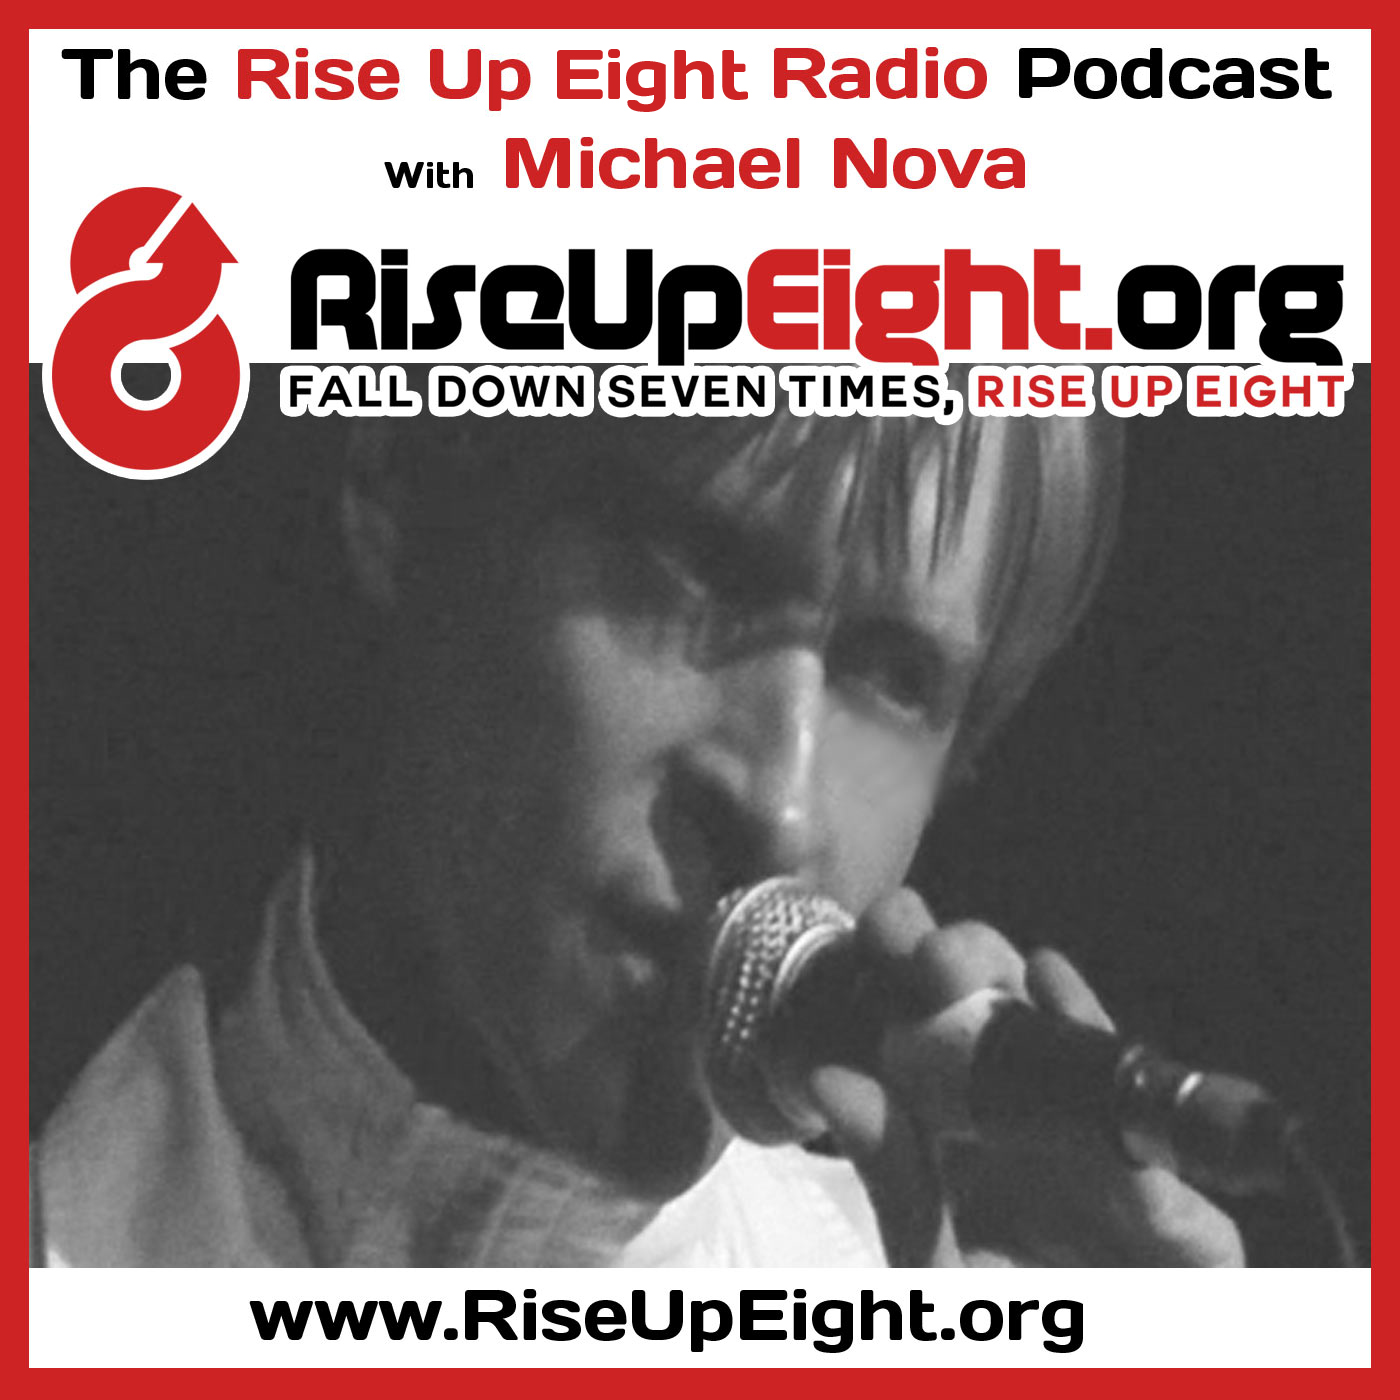 Rise Up Eight Radio: Inspirational People With Inspirational Stories On Overcoming Adversity